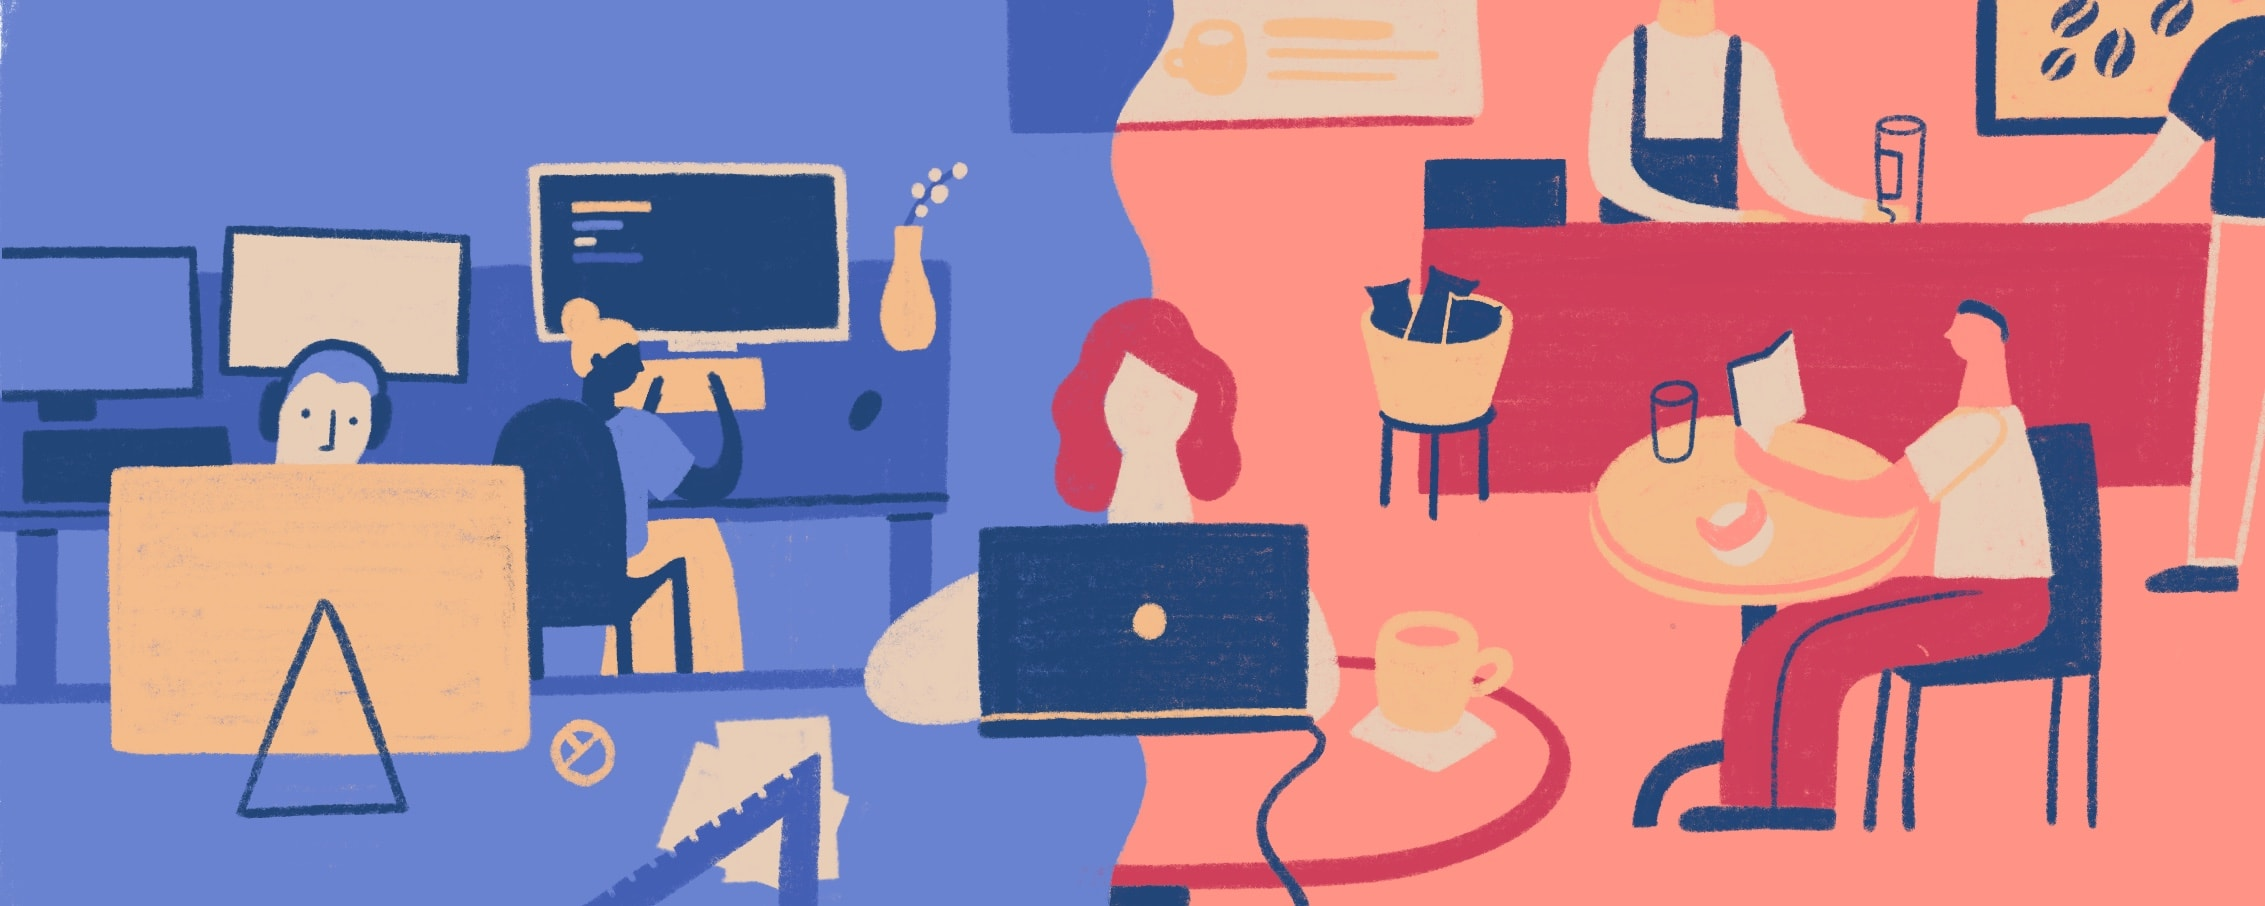 The differences between a digital workspace and a digital workplace